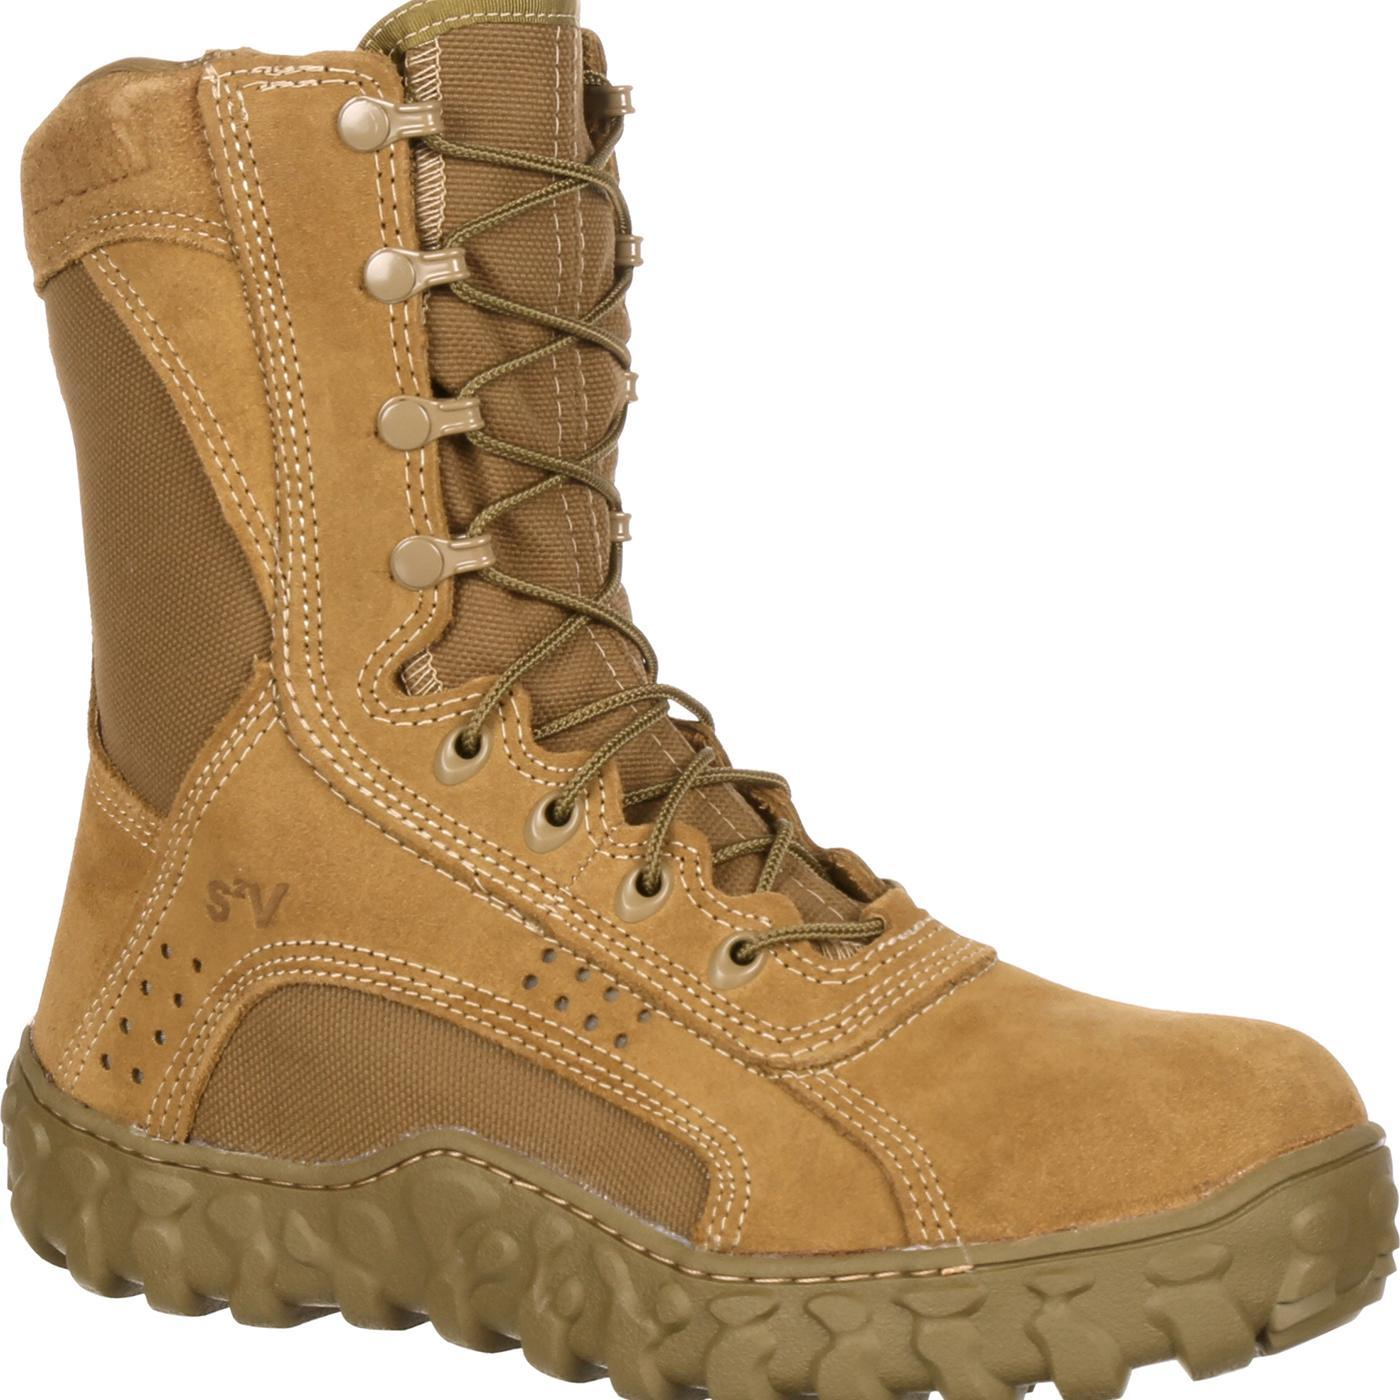 Rocky FQ0006104 S2V Steel Toe Tactical Military Boot by Rocky